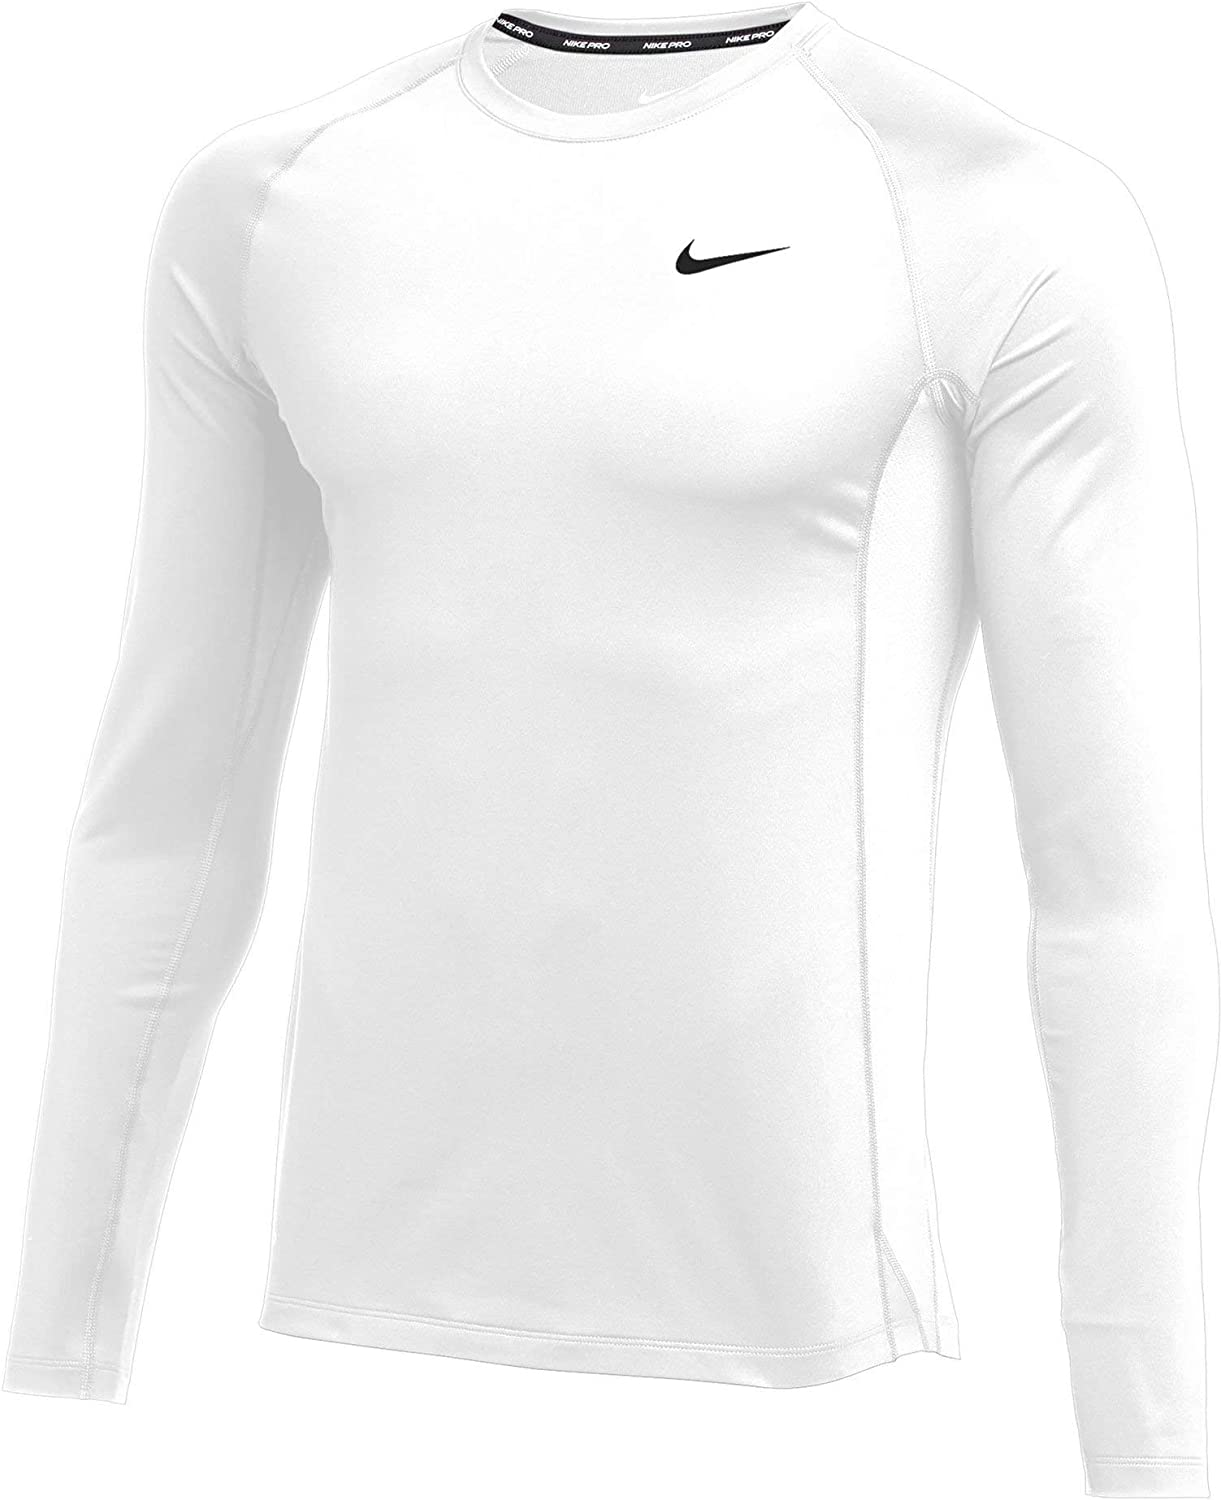 Product Nike Many popular brands Men's Pro Fitted Long White Sleeve Black Top